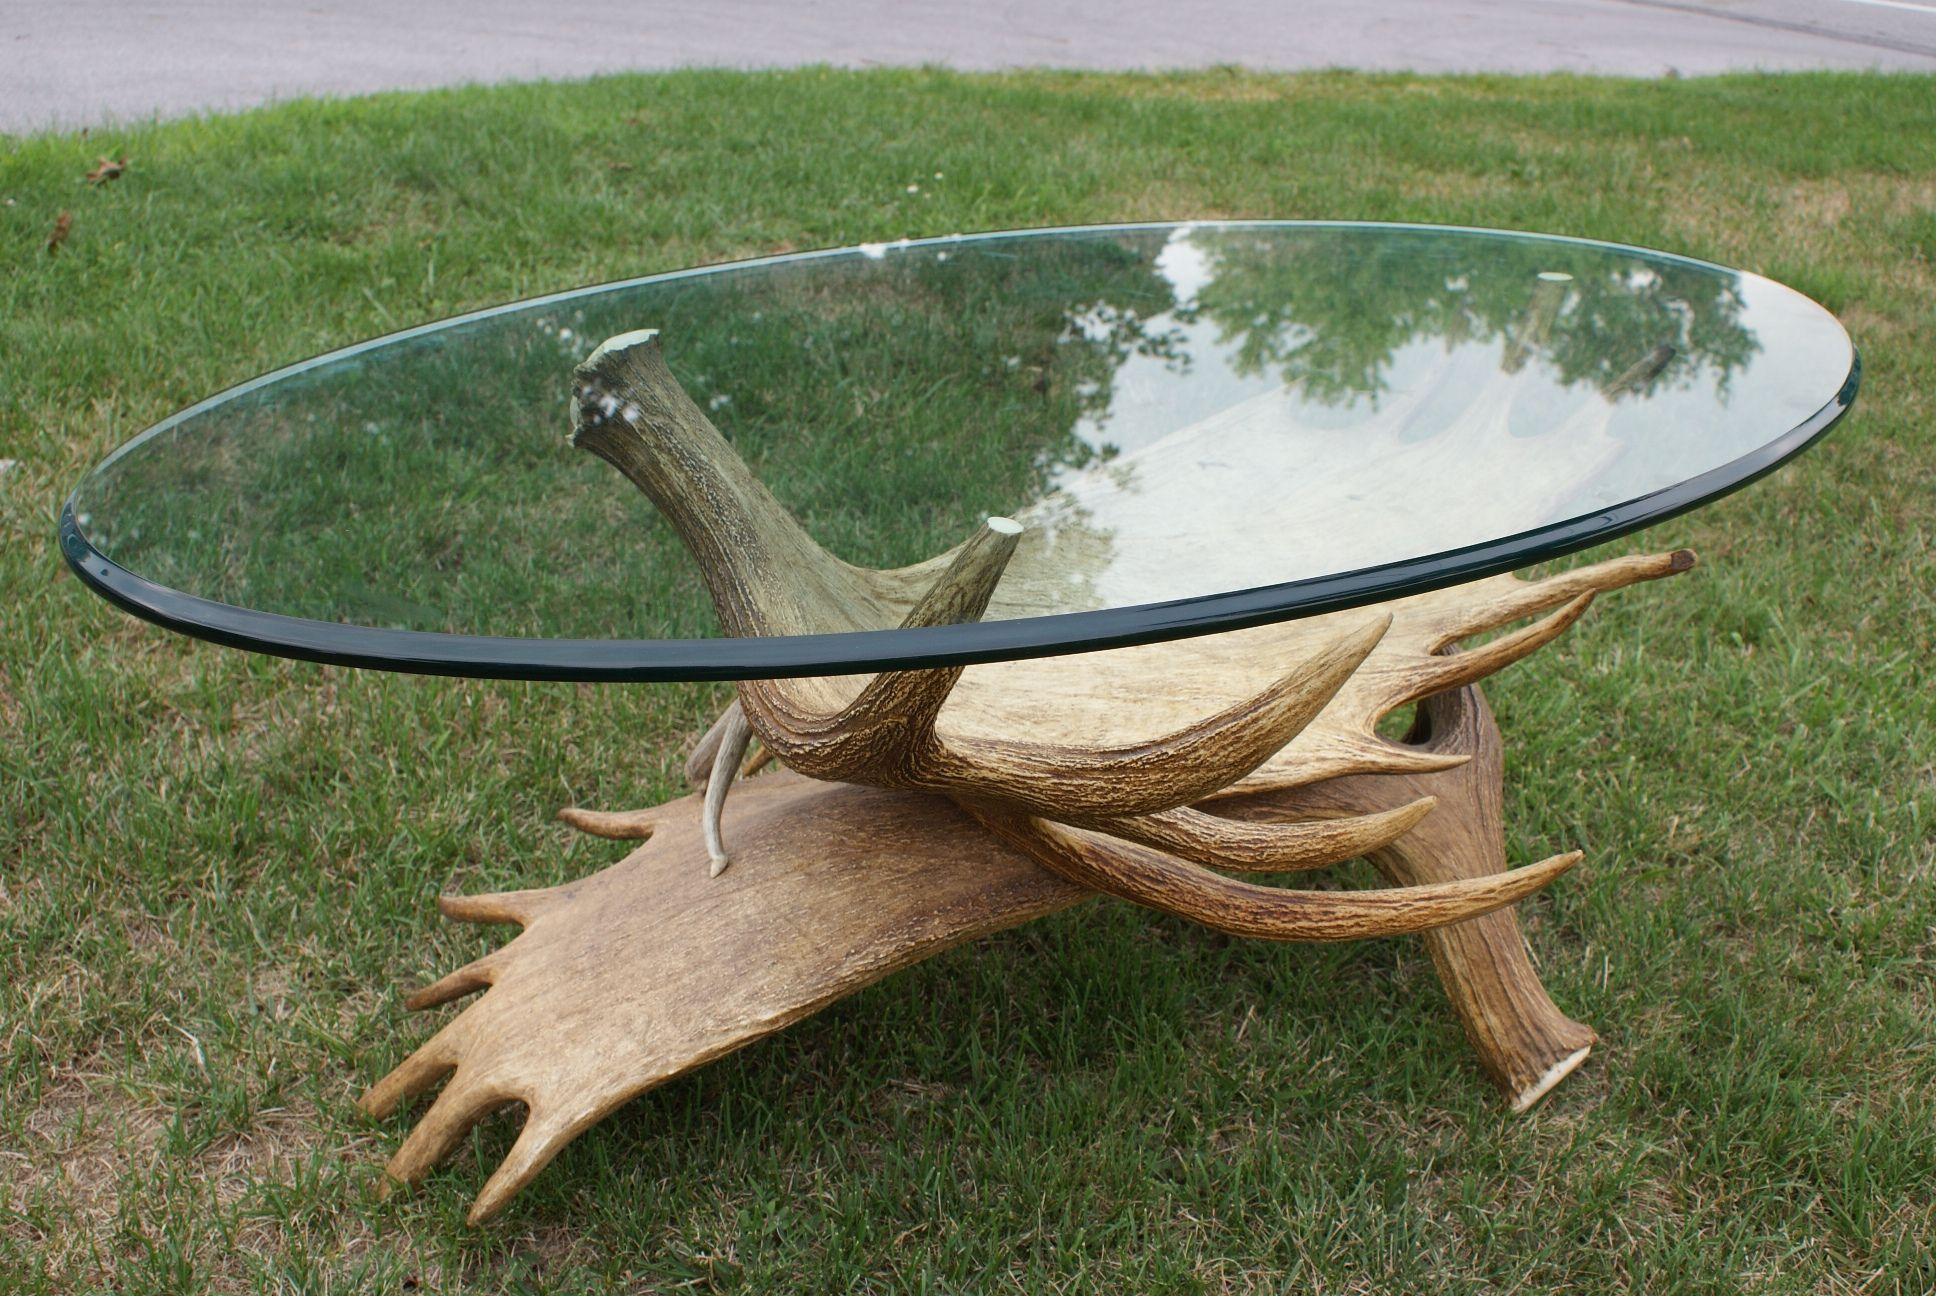 Moose Antler Coffee Table Antlers Decor Antlers Decor Diy